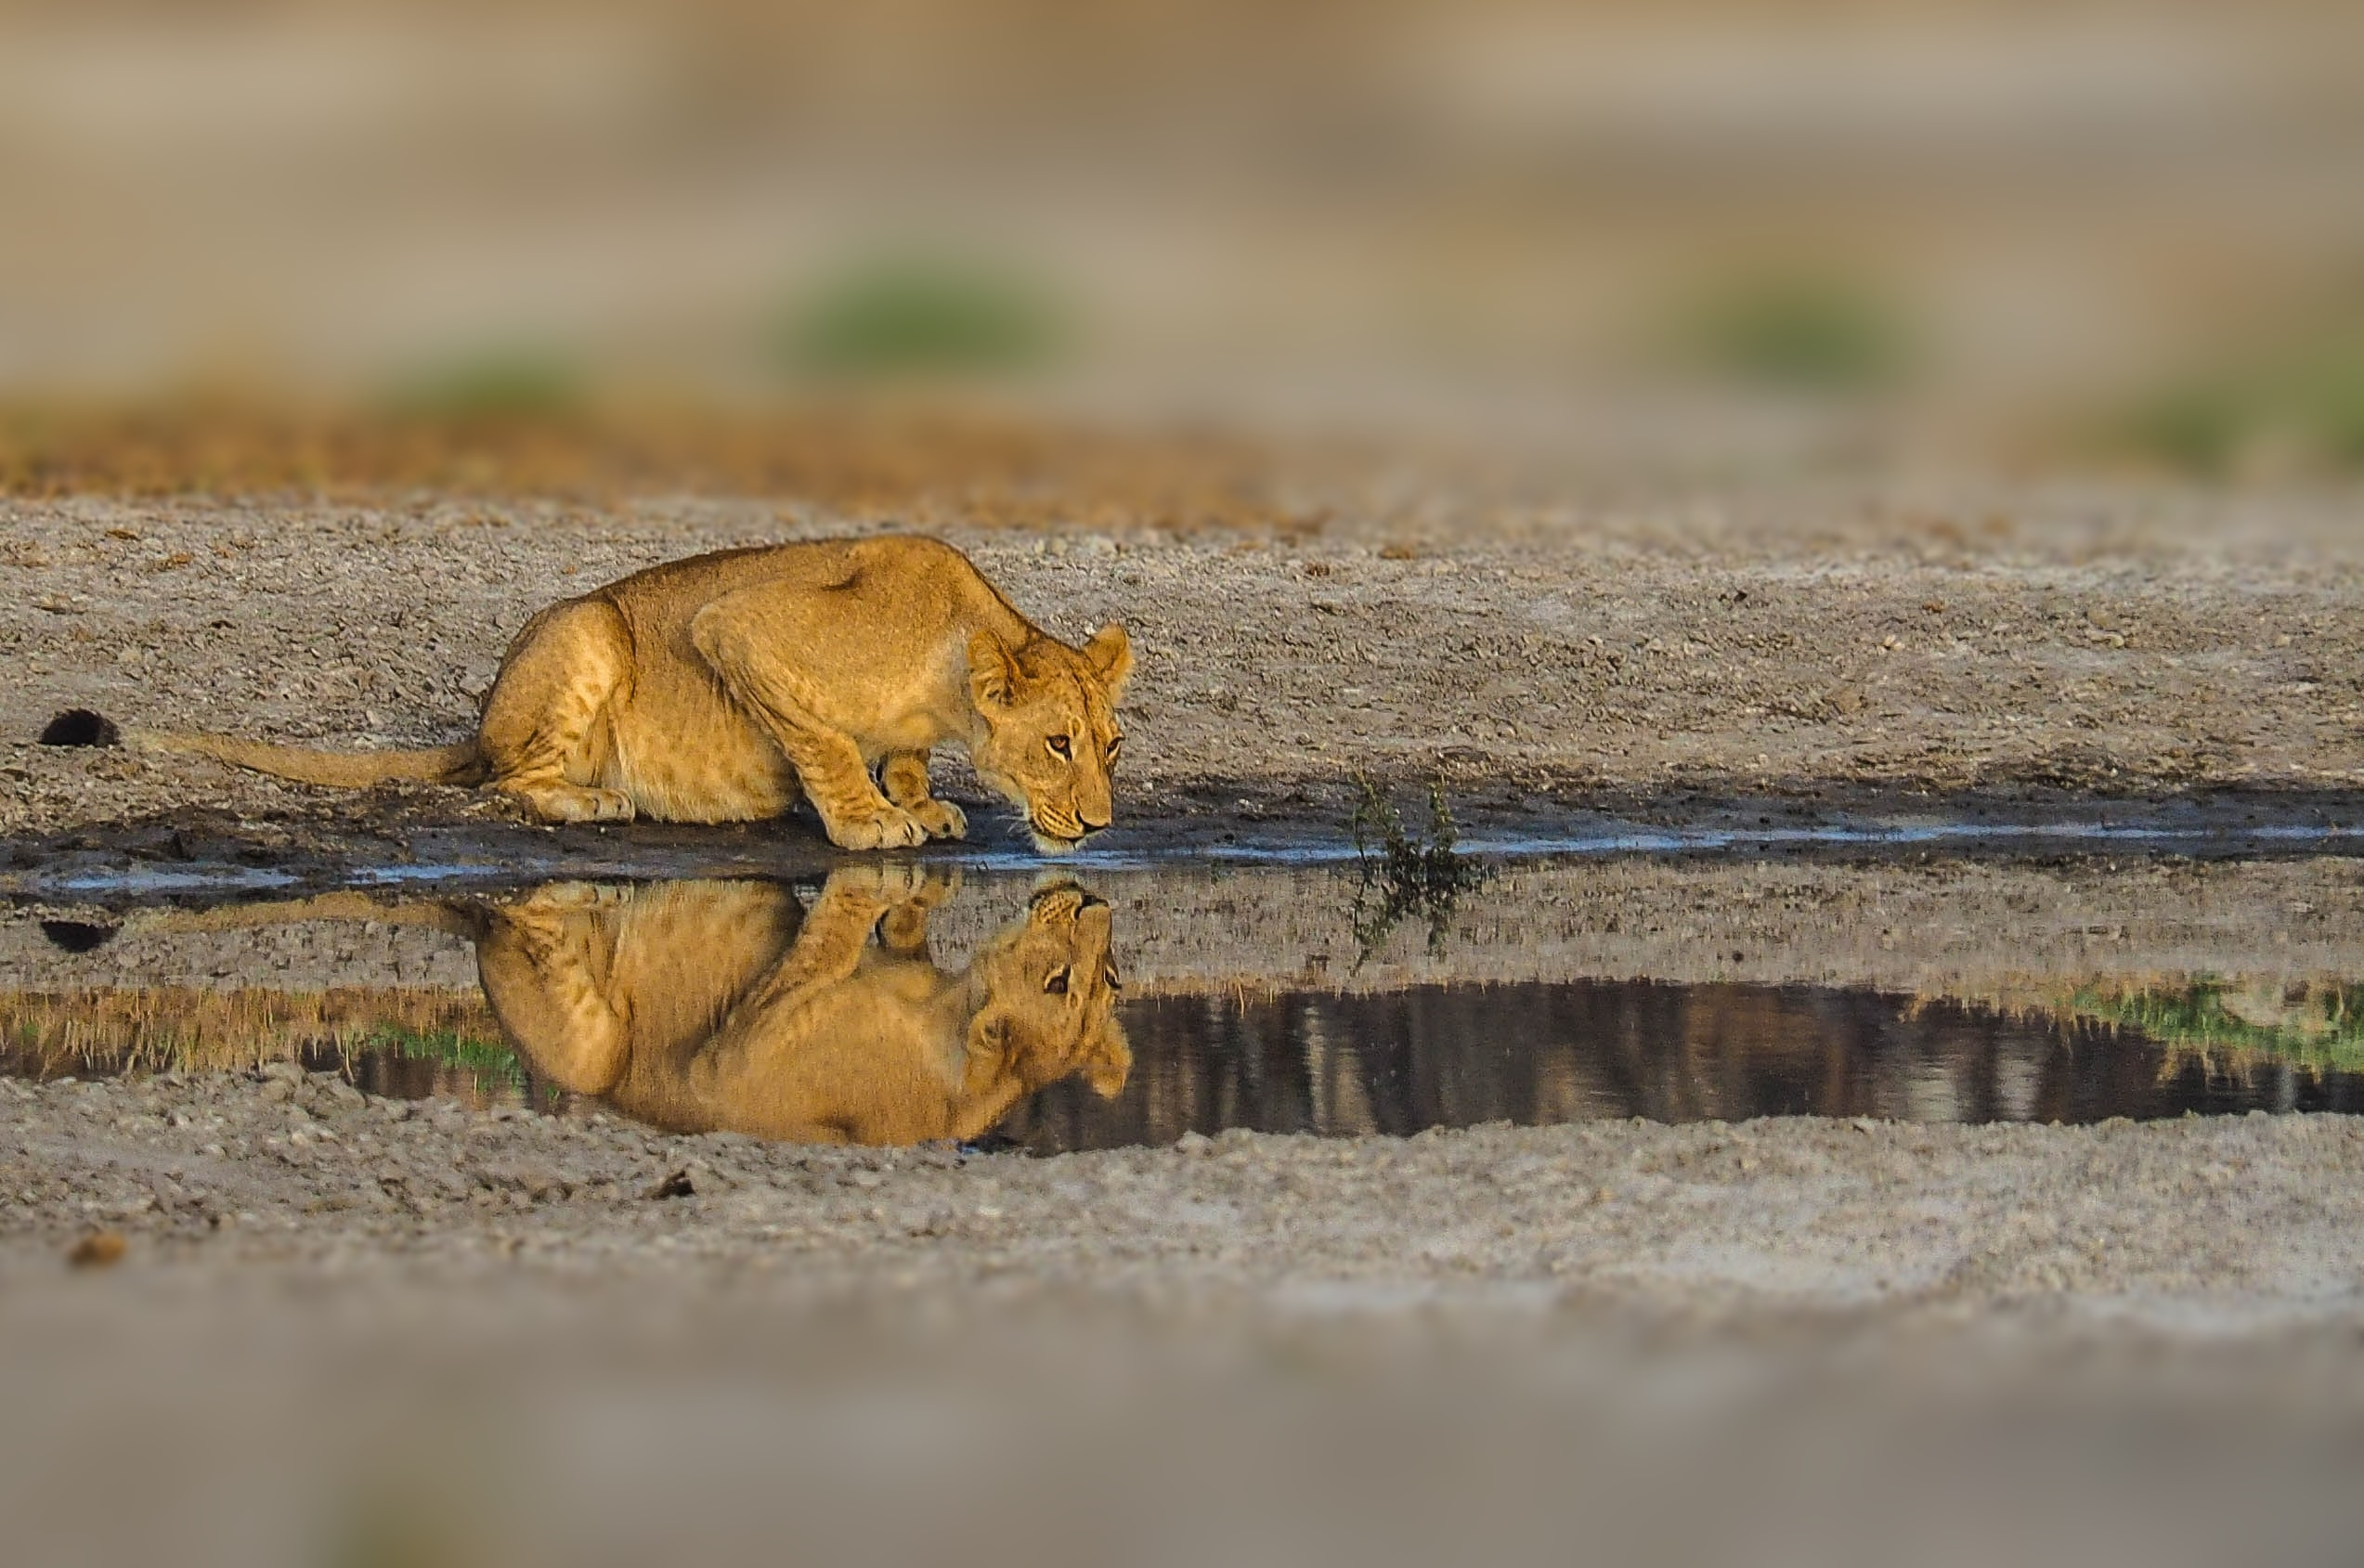 wildlife photography of lioness drinking water